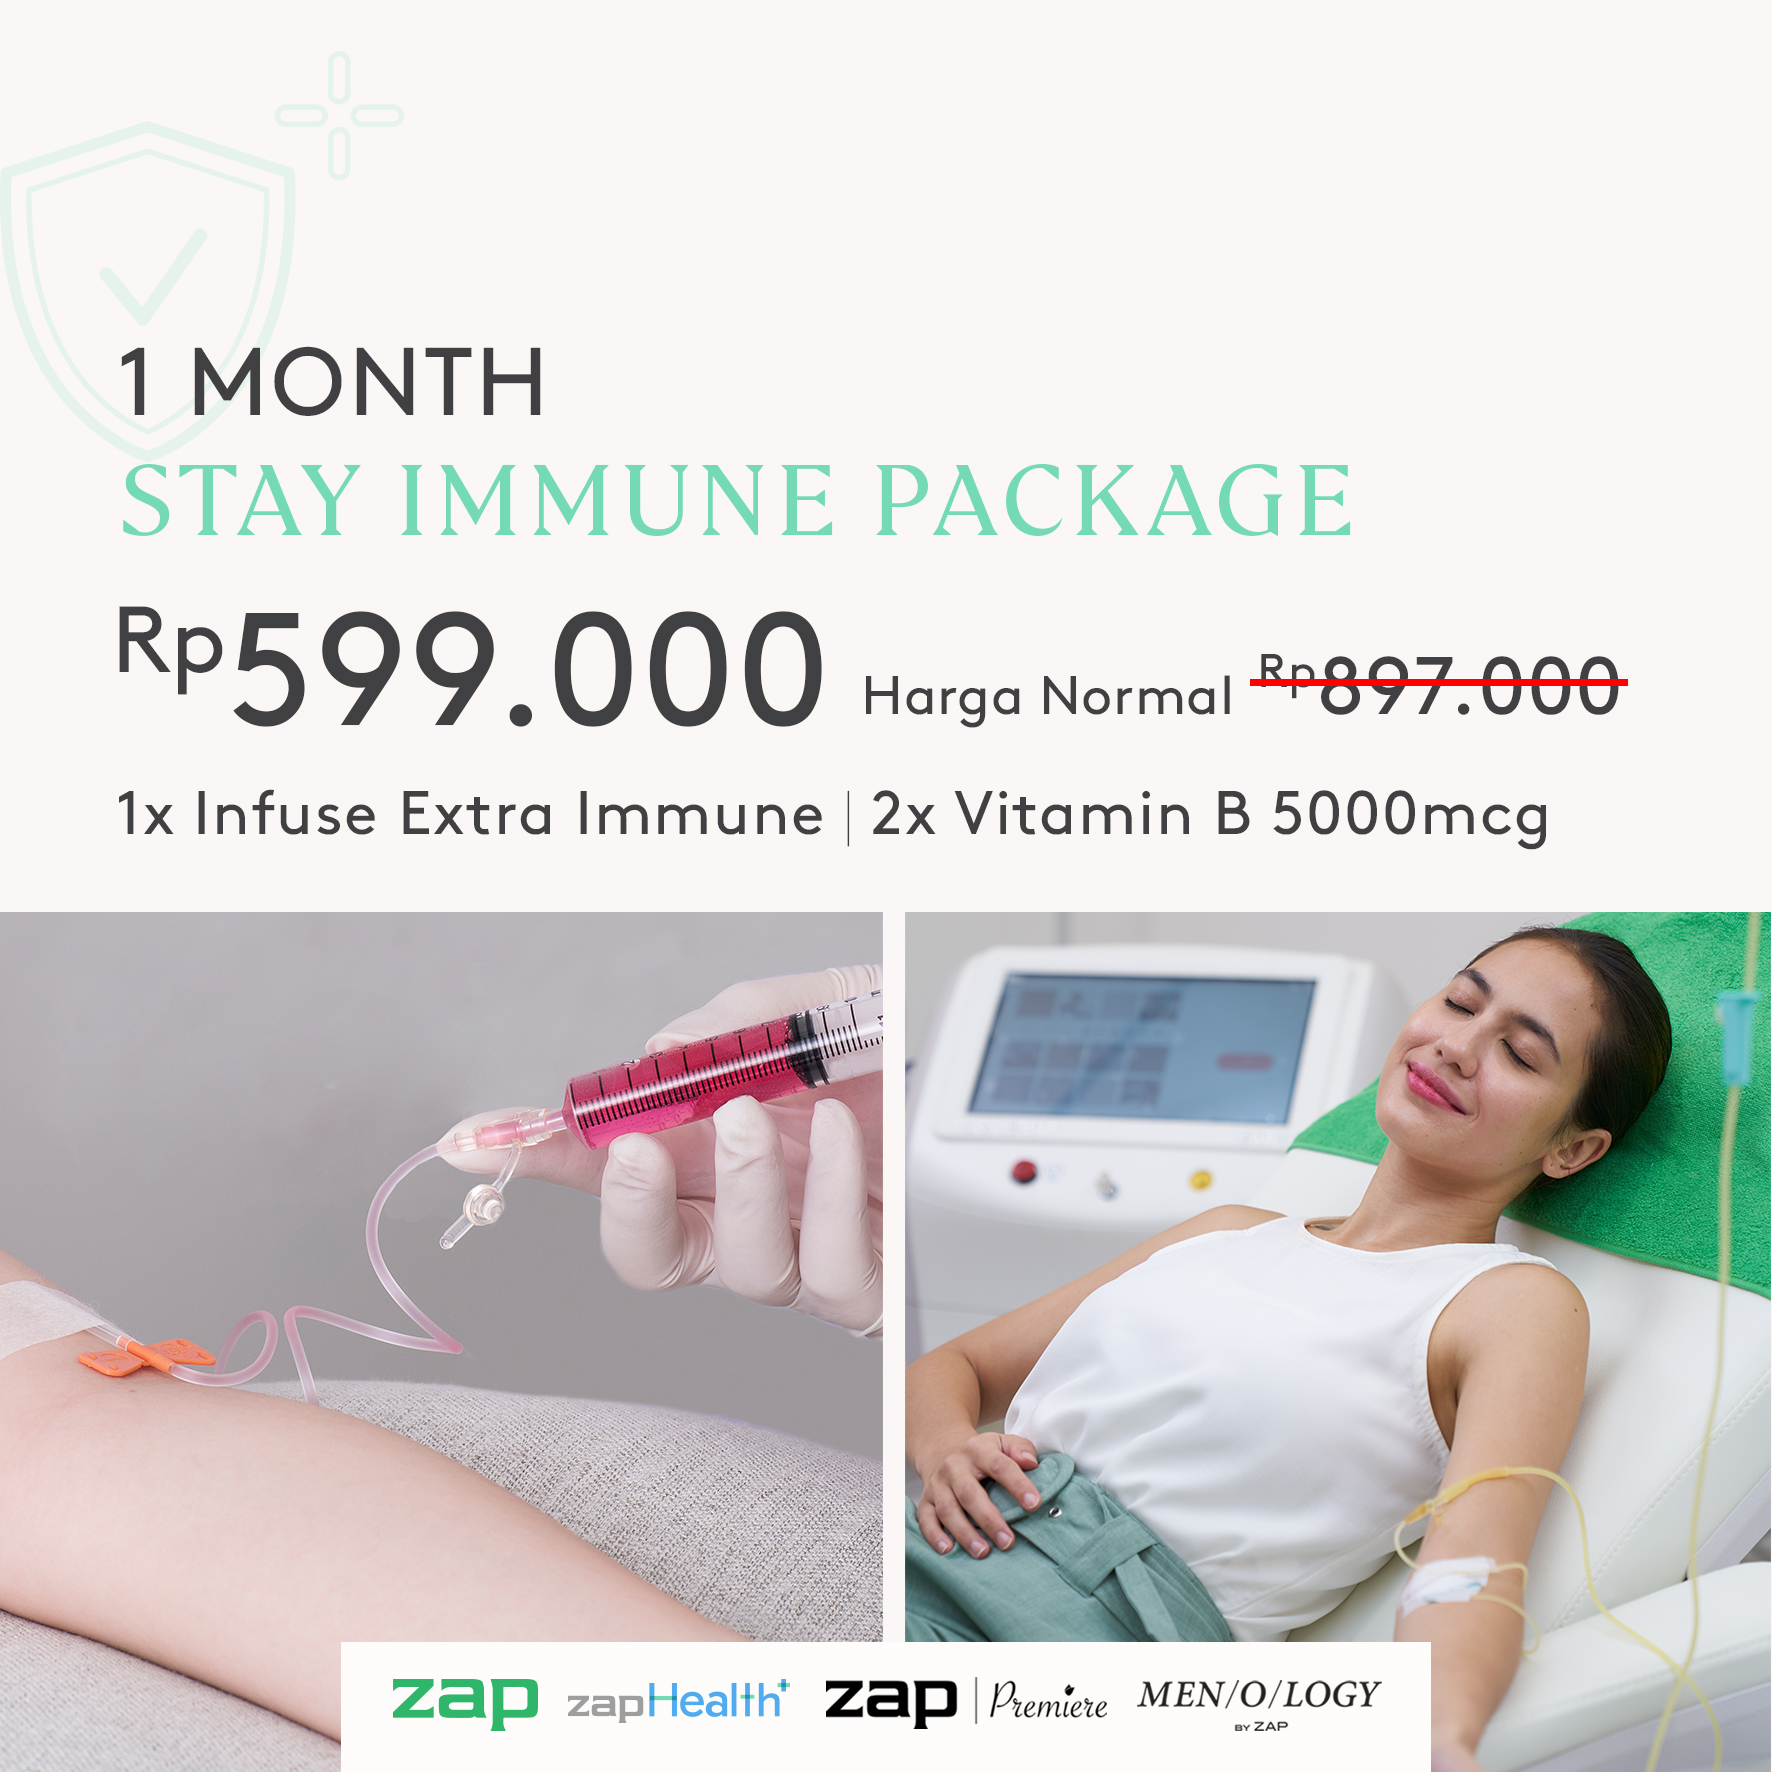 1 Month Stay Immune Package